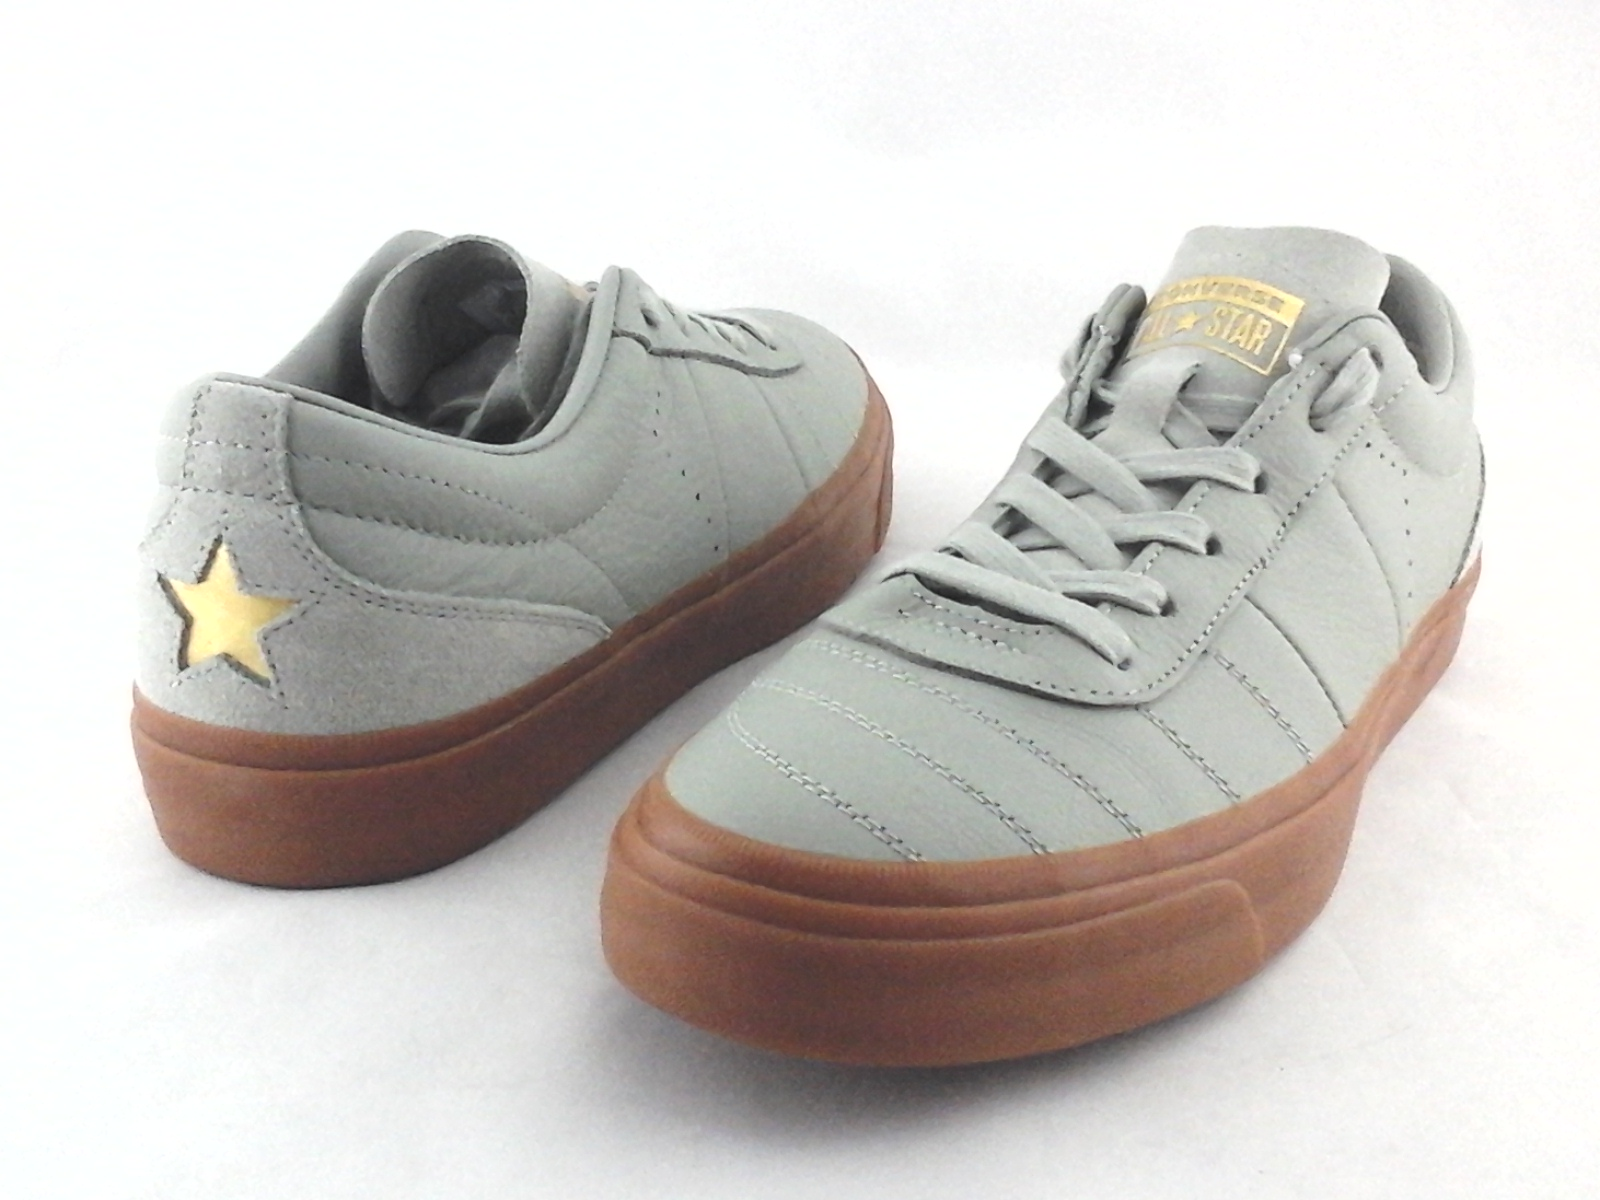 converse all star gum